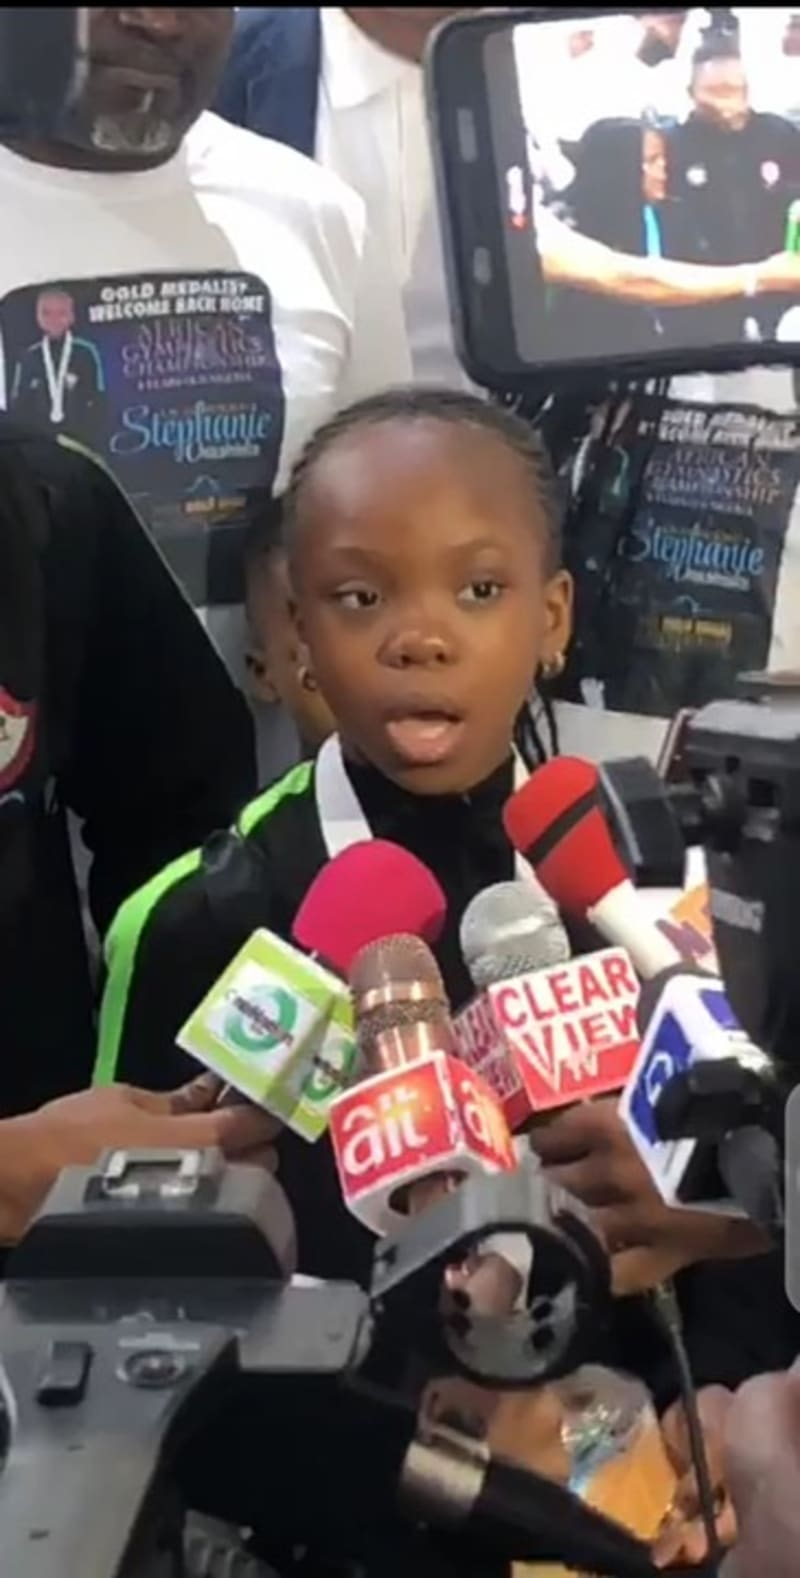 Nigeria To Lose Out At International Gymnastics Over Sponsorship For 10-Year-Old